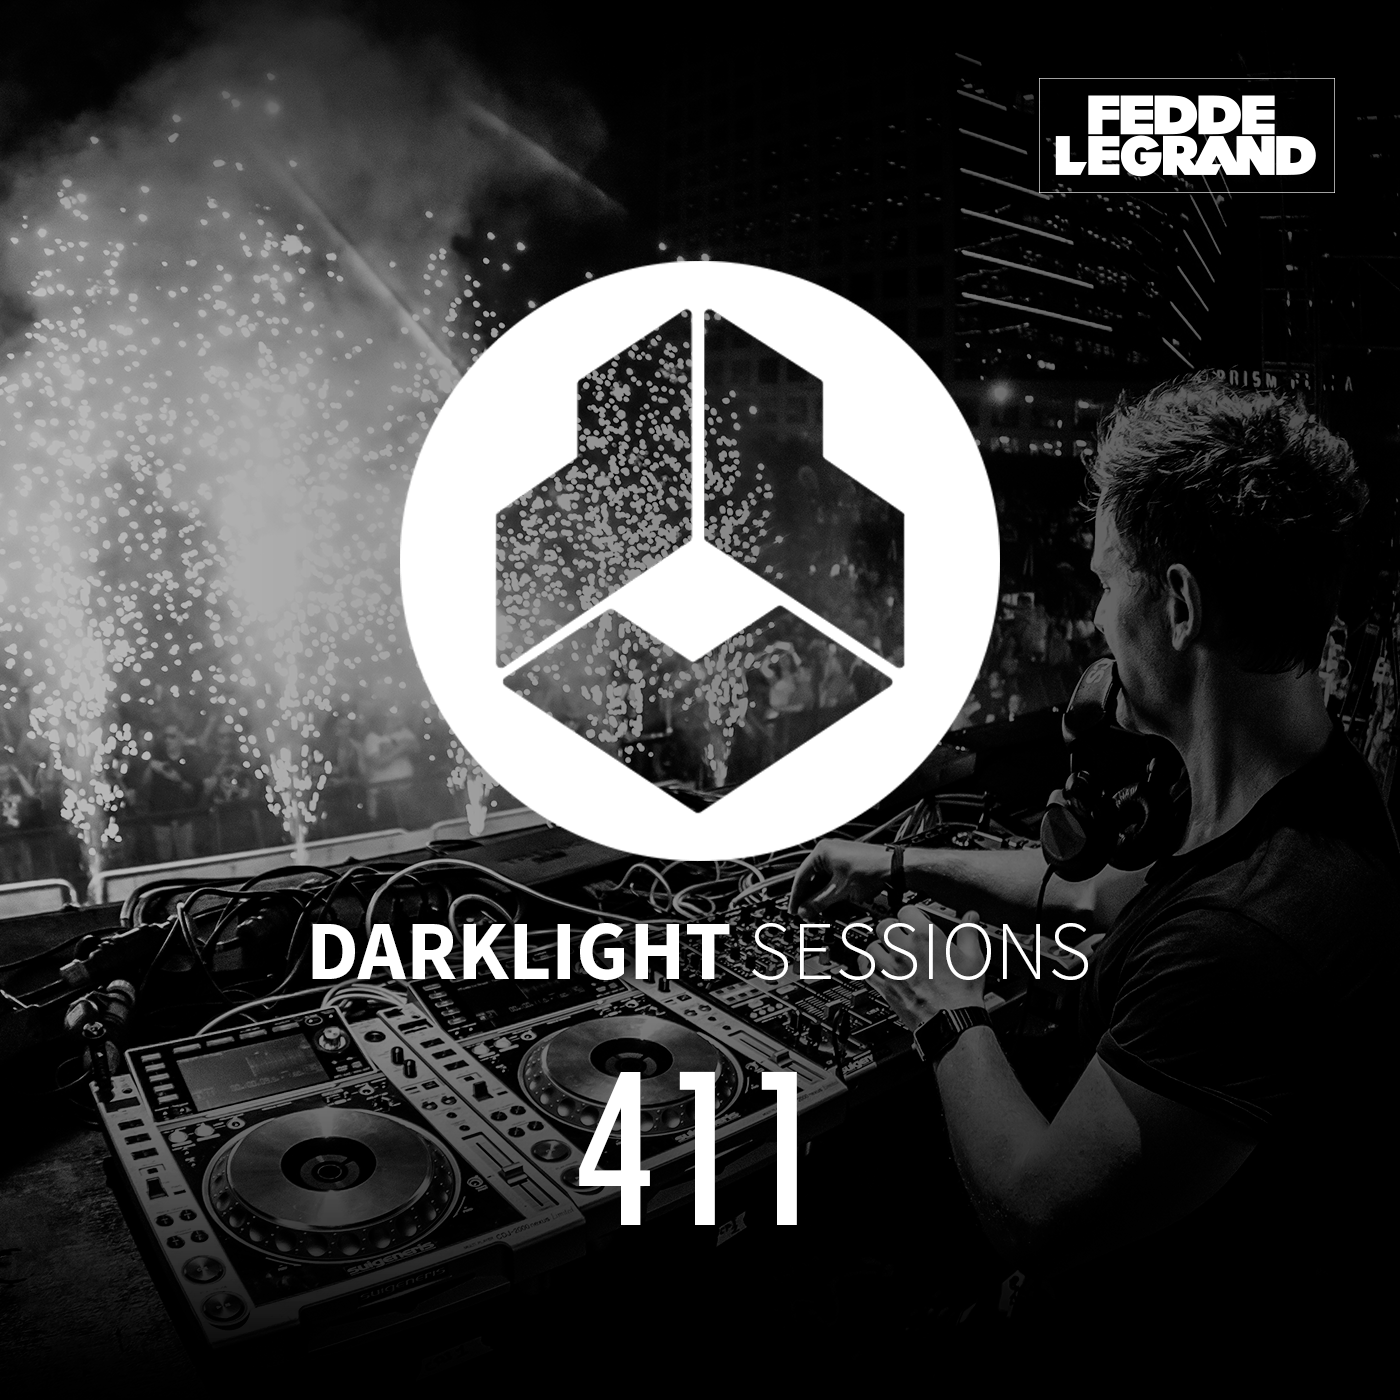 Darklight Sessions 411